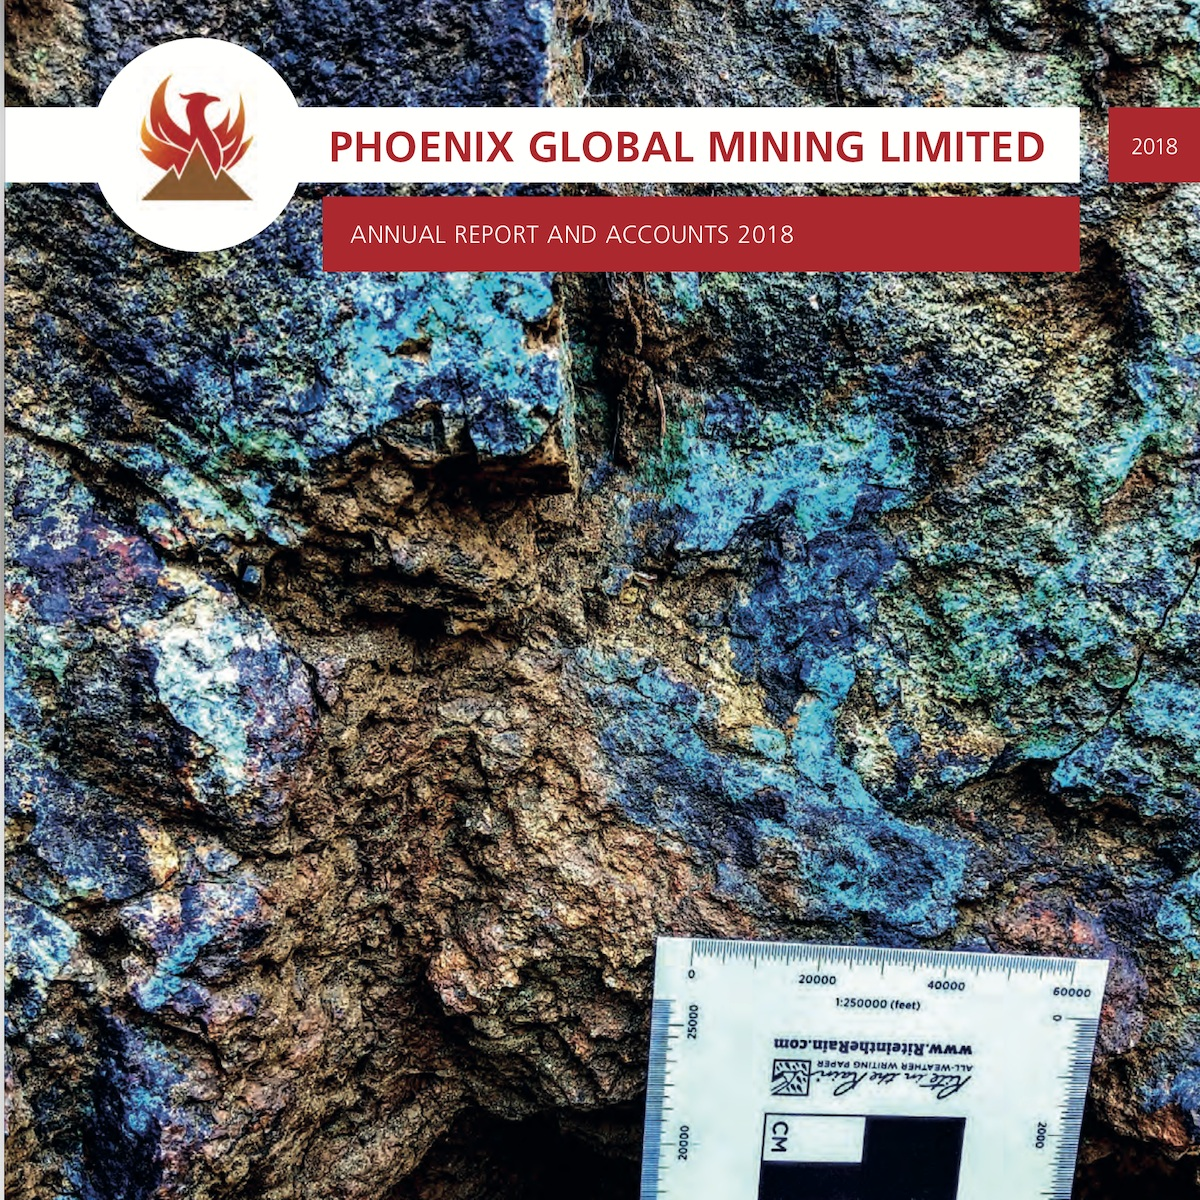 Phoenix Global Mining Limited Annual Report and Accounts 2018 - Phoenix Global Mining Ltd is pleased to announce its audited results for the year ended 31 December 2018.